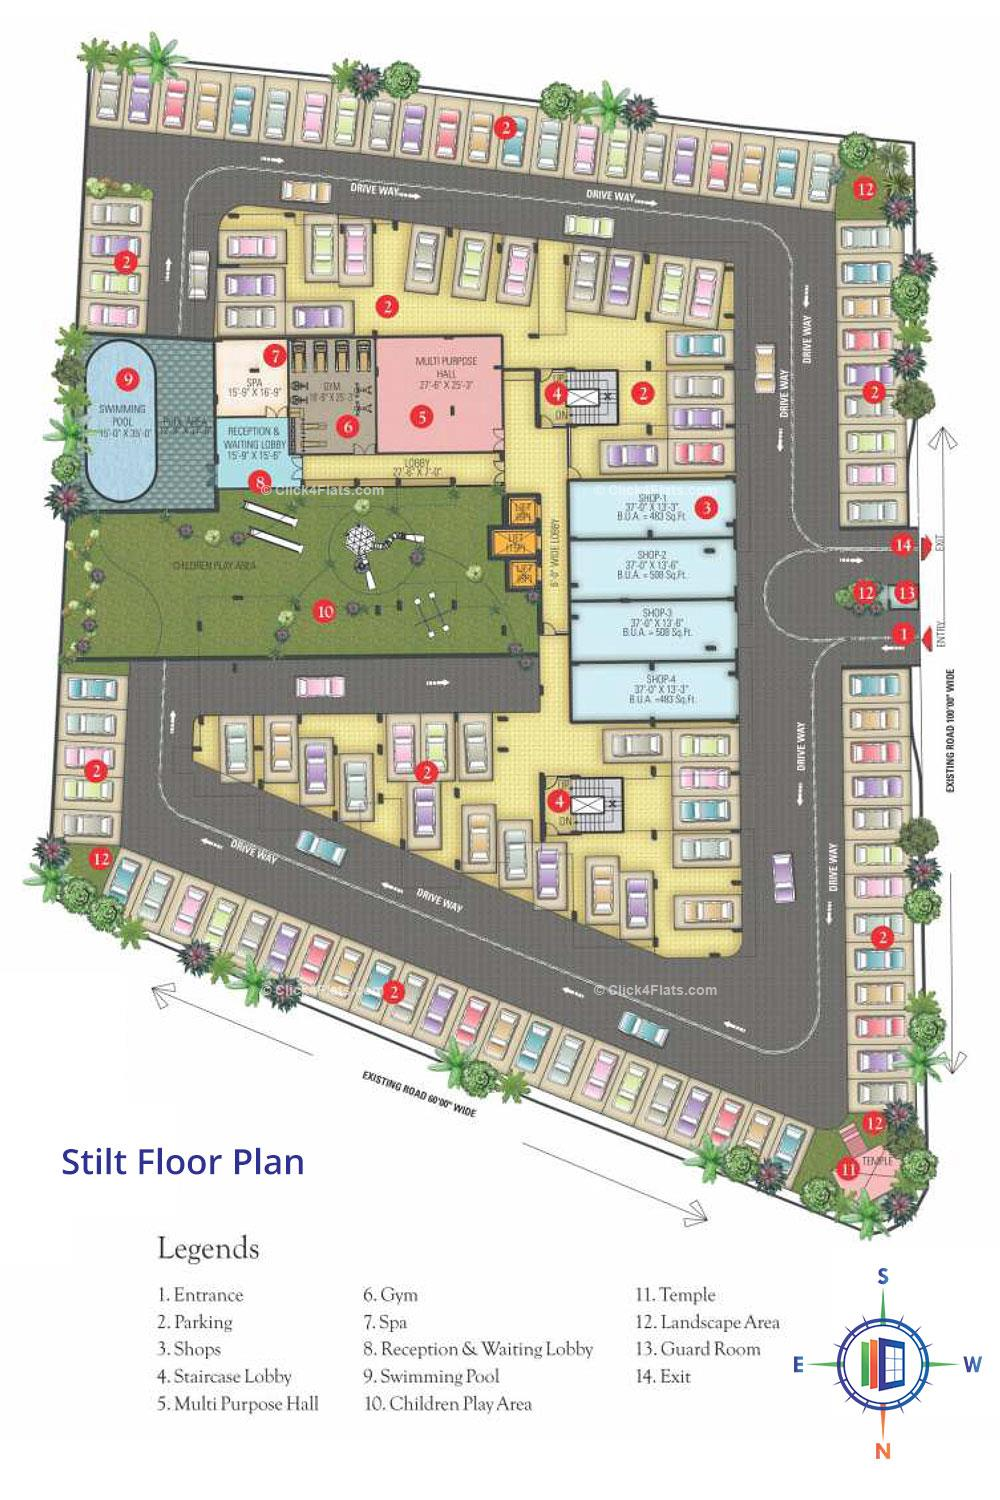 Coral Arihant Heights Stilt Floor Plan